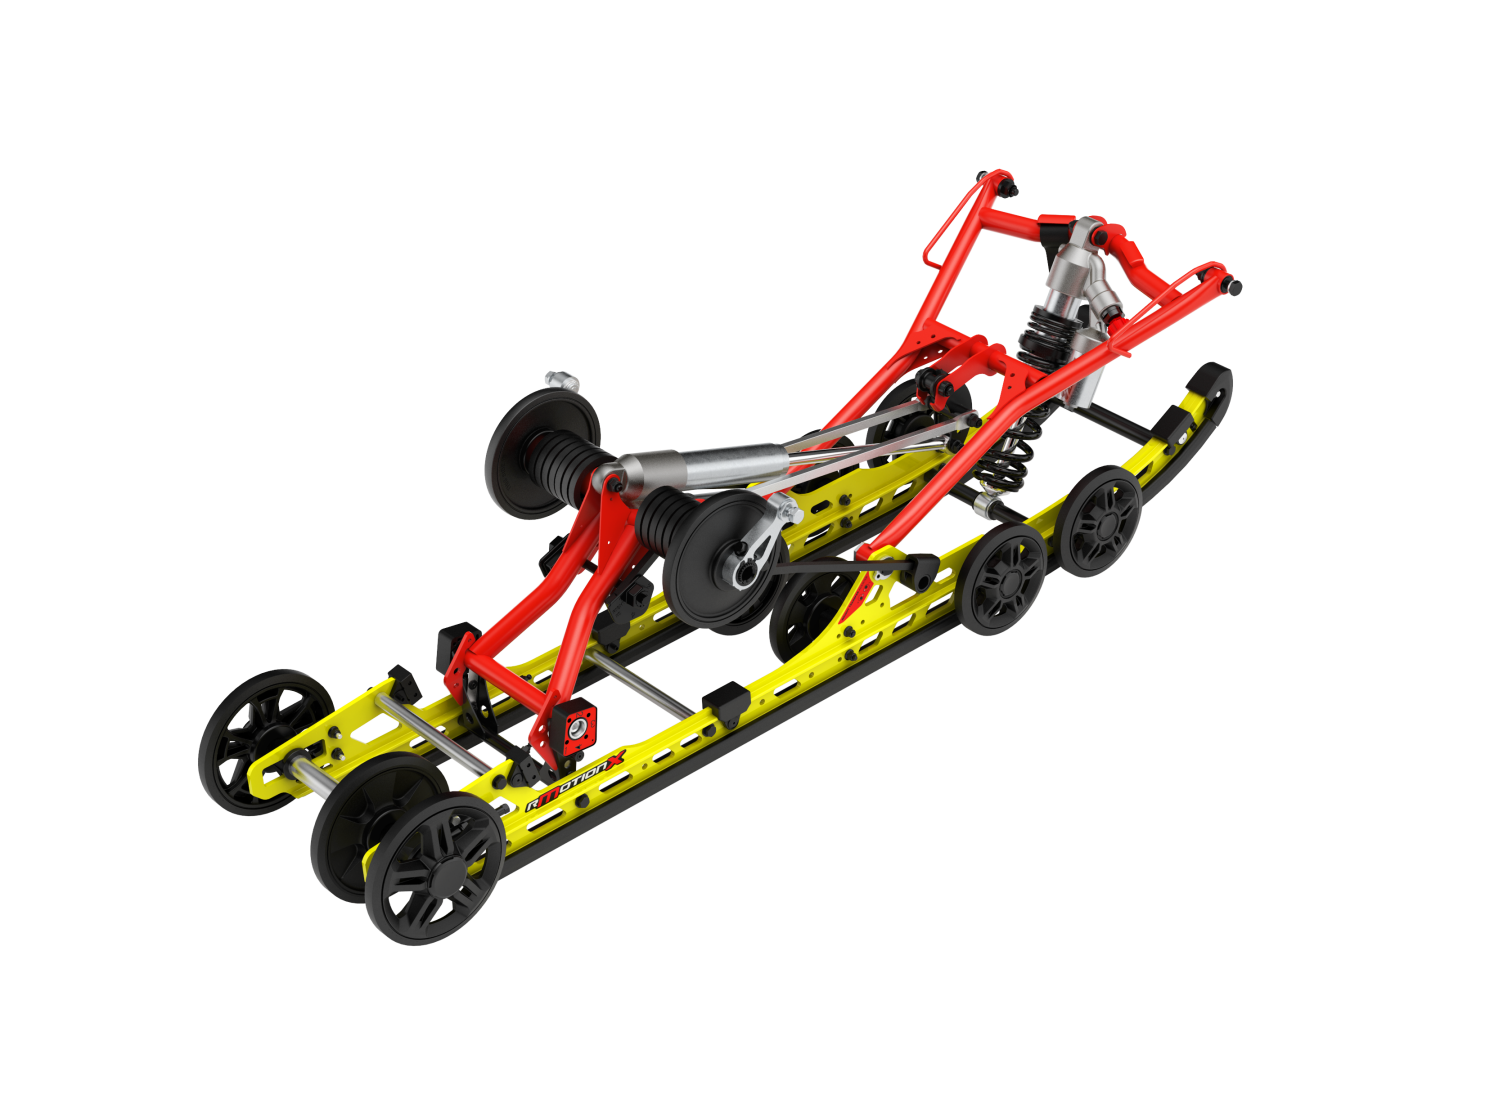 Suspensions rMotion X for Ski-Doo